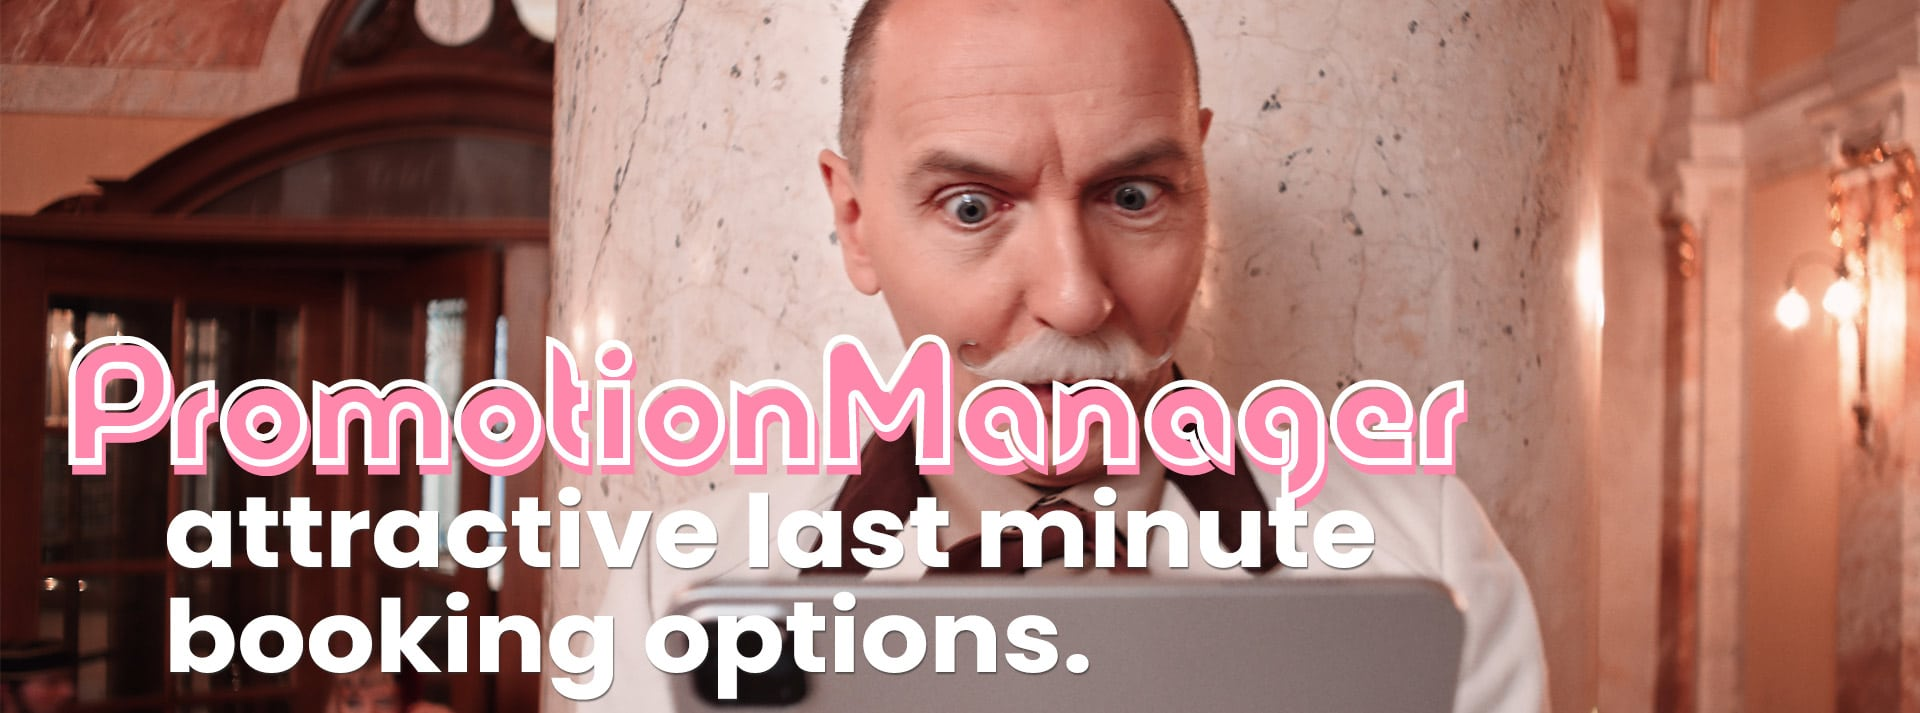 GASTROdat PromotionManager attractive last minute booking options